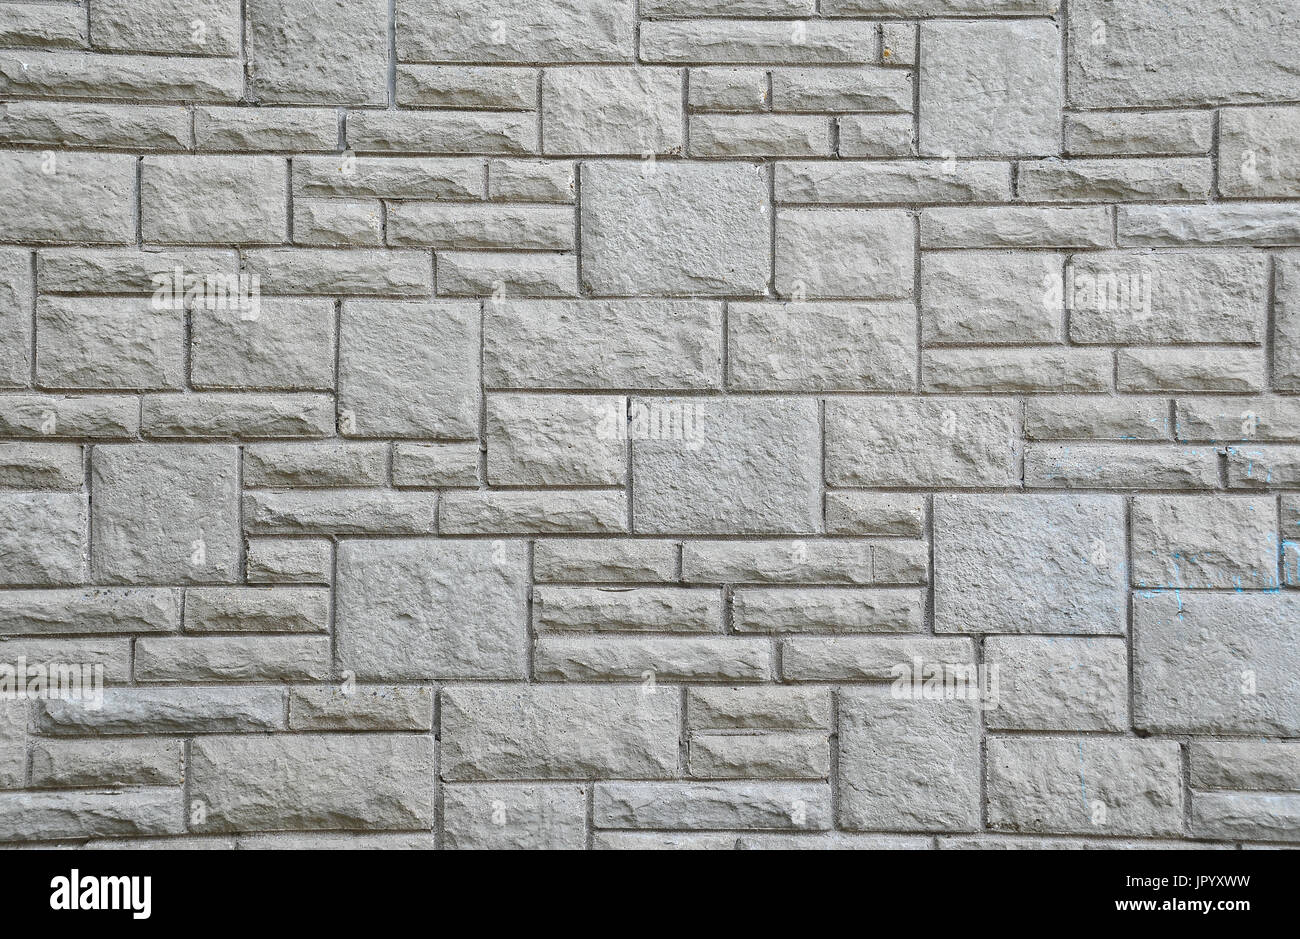 Wall Cladding Stock Photos & Wall Cladding Stock Images - Alamy